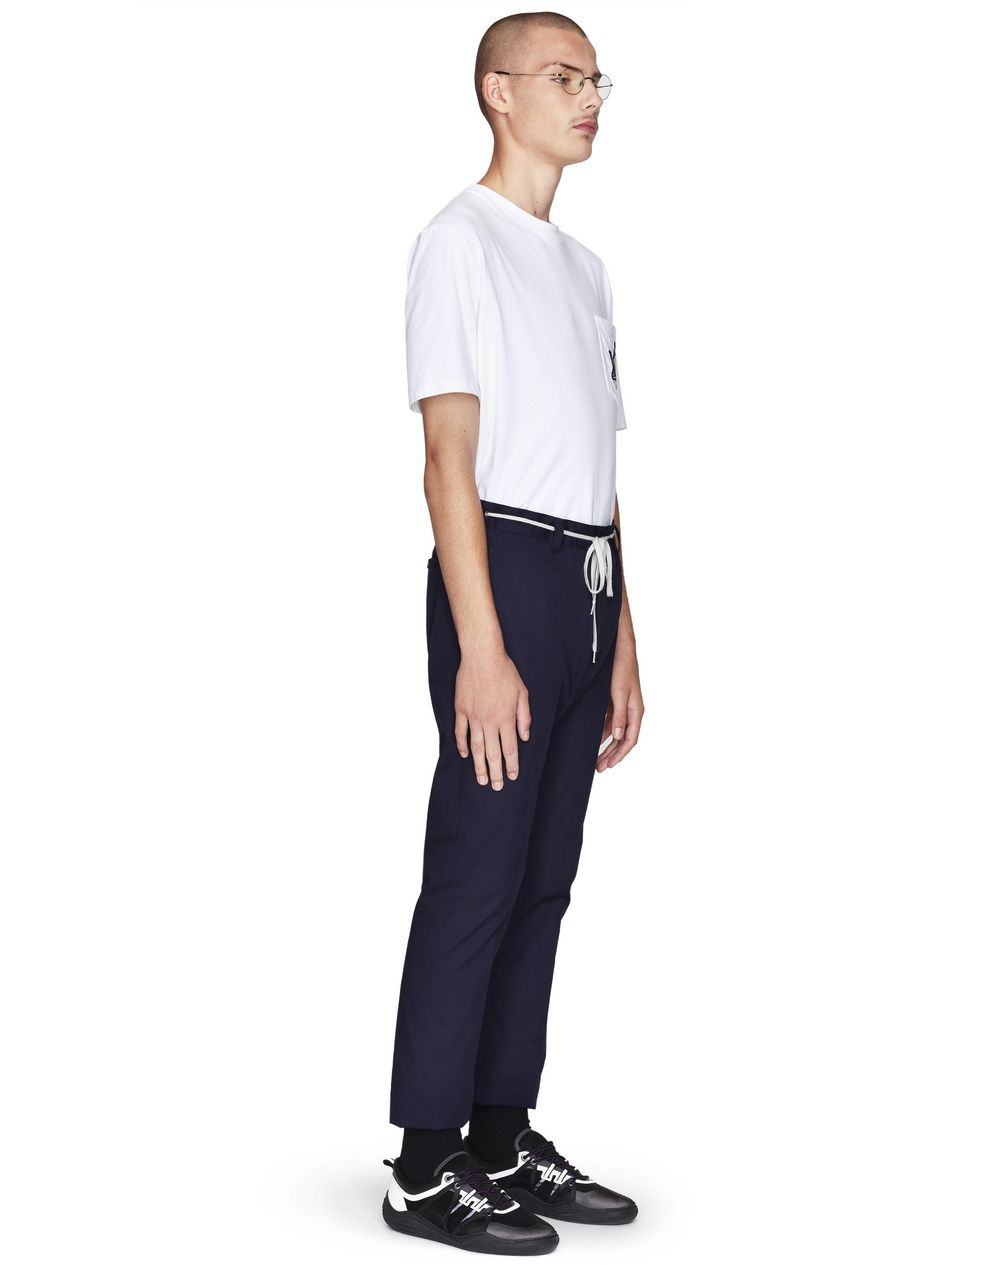 DARK BLUE FITTED DRAWSTRING TROUSERS - Lanvin